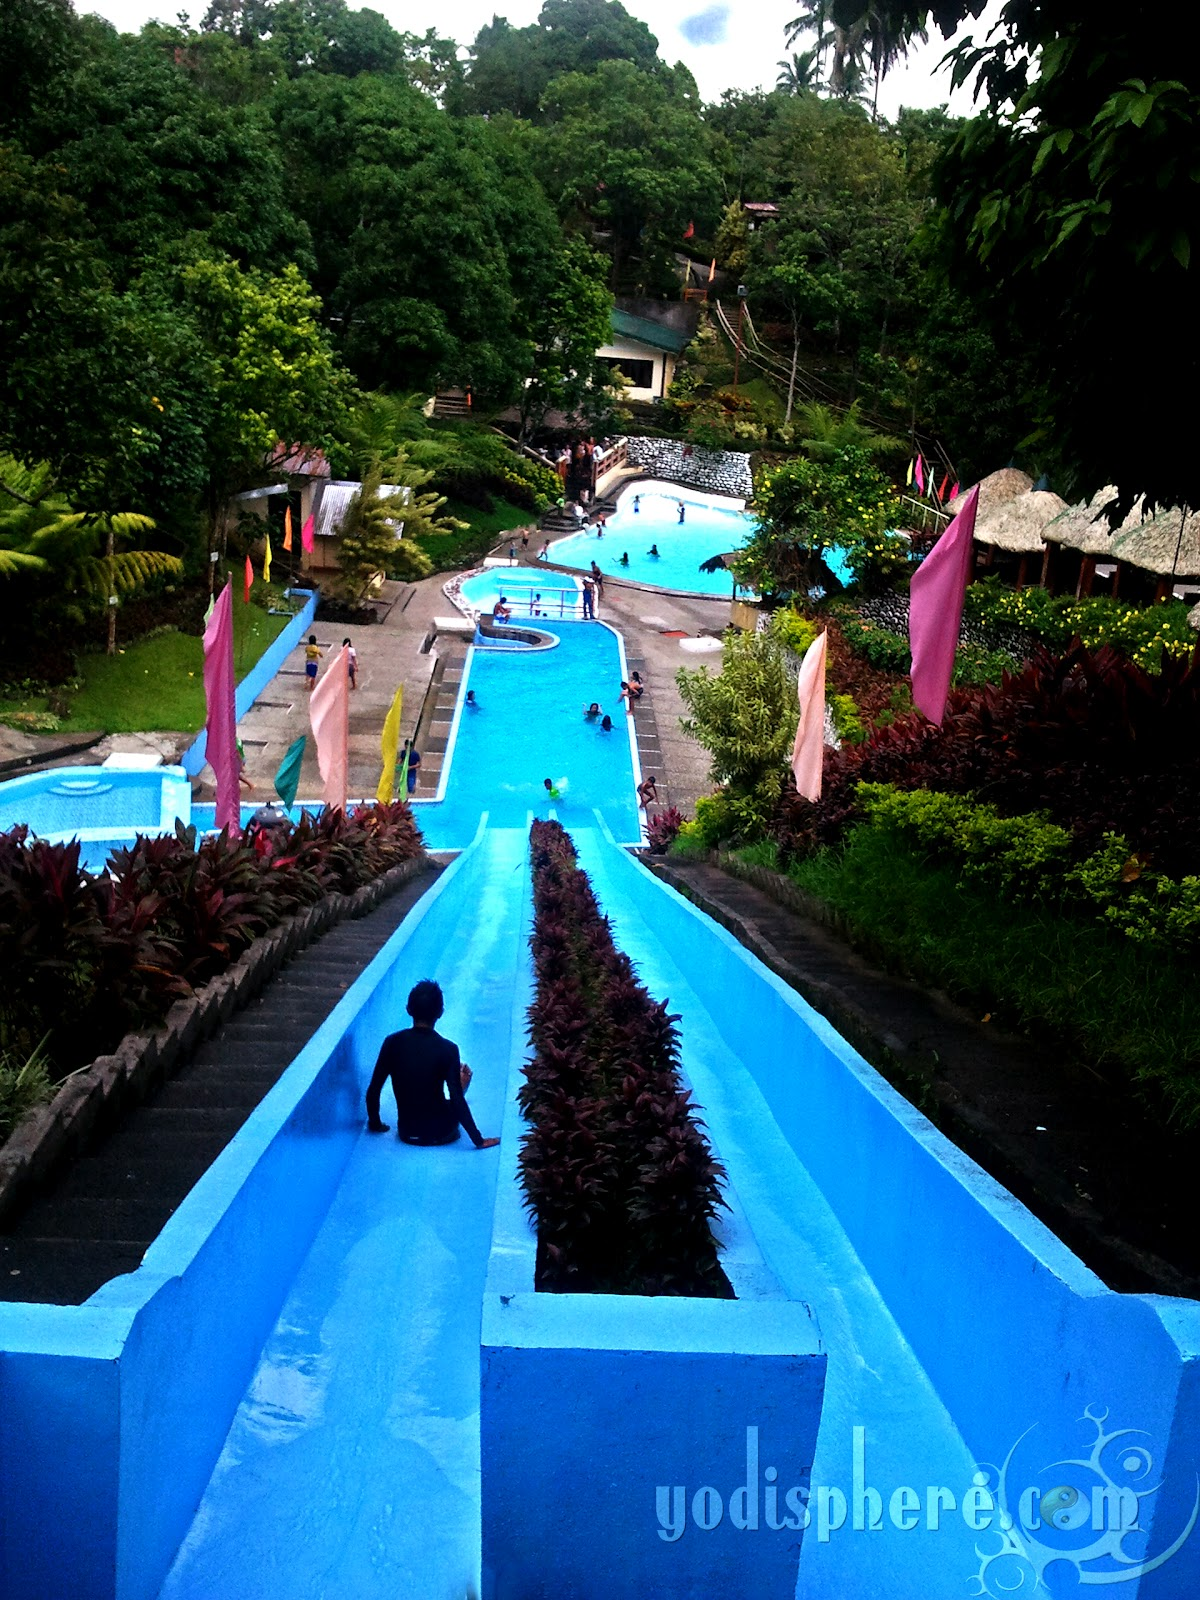 Nagcarlan laguna villa sylvia resort long water slide